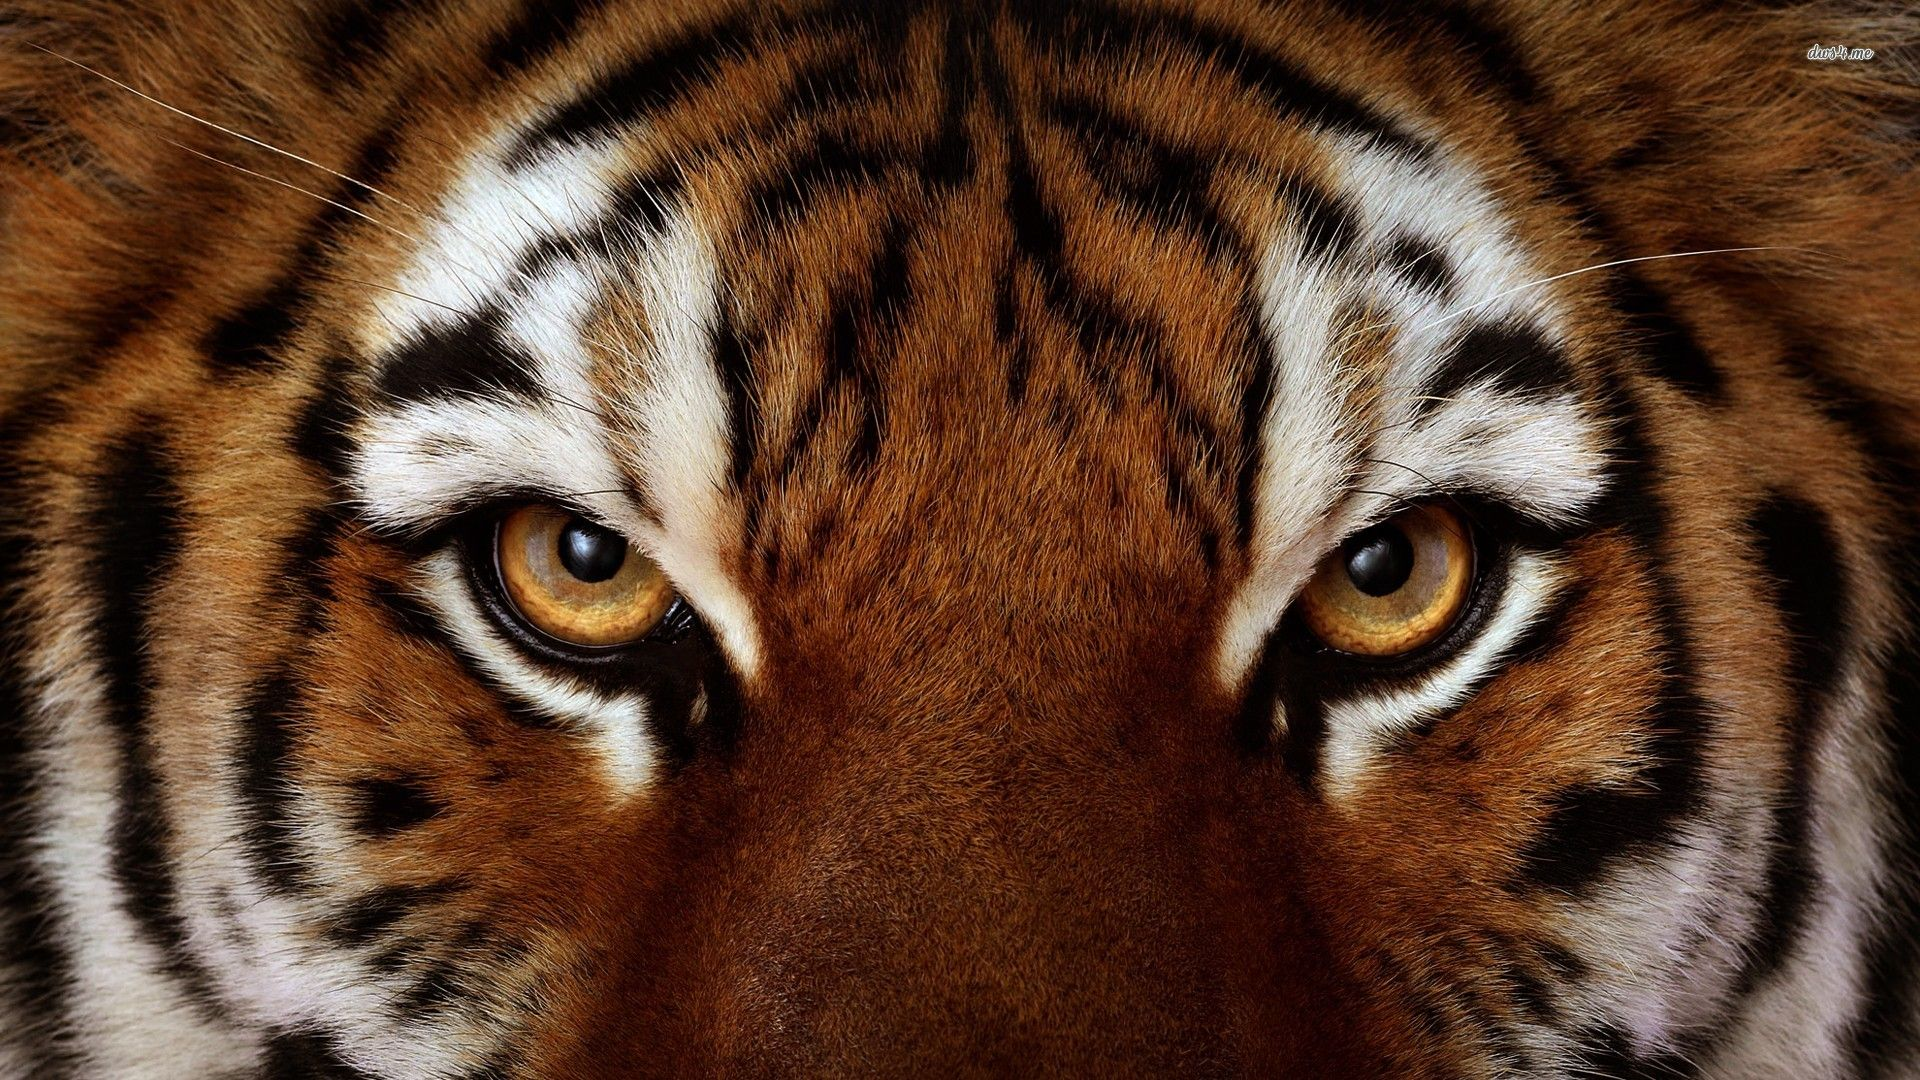 Wallpapers For Angry Bengal Tiger Wallpaper